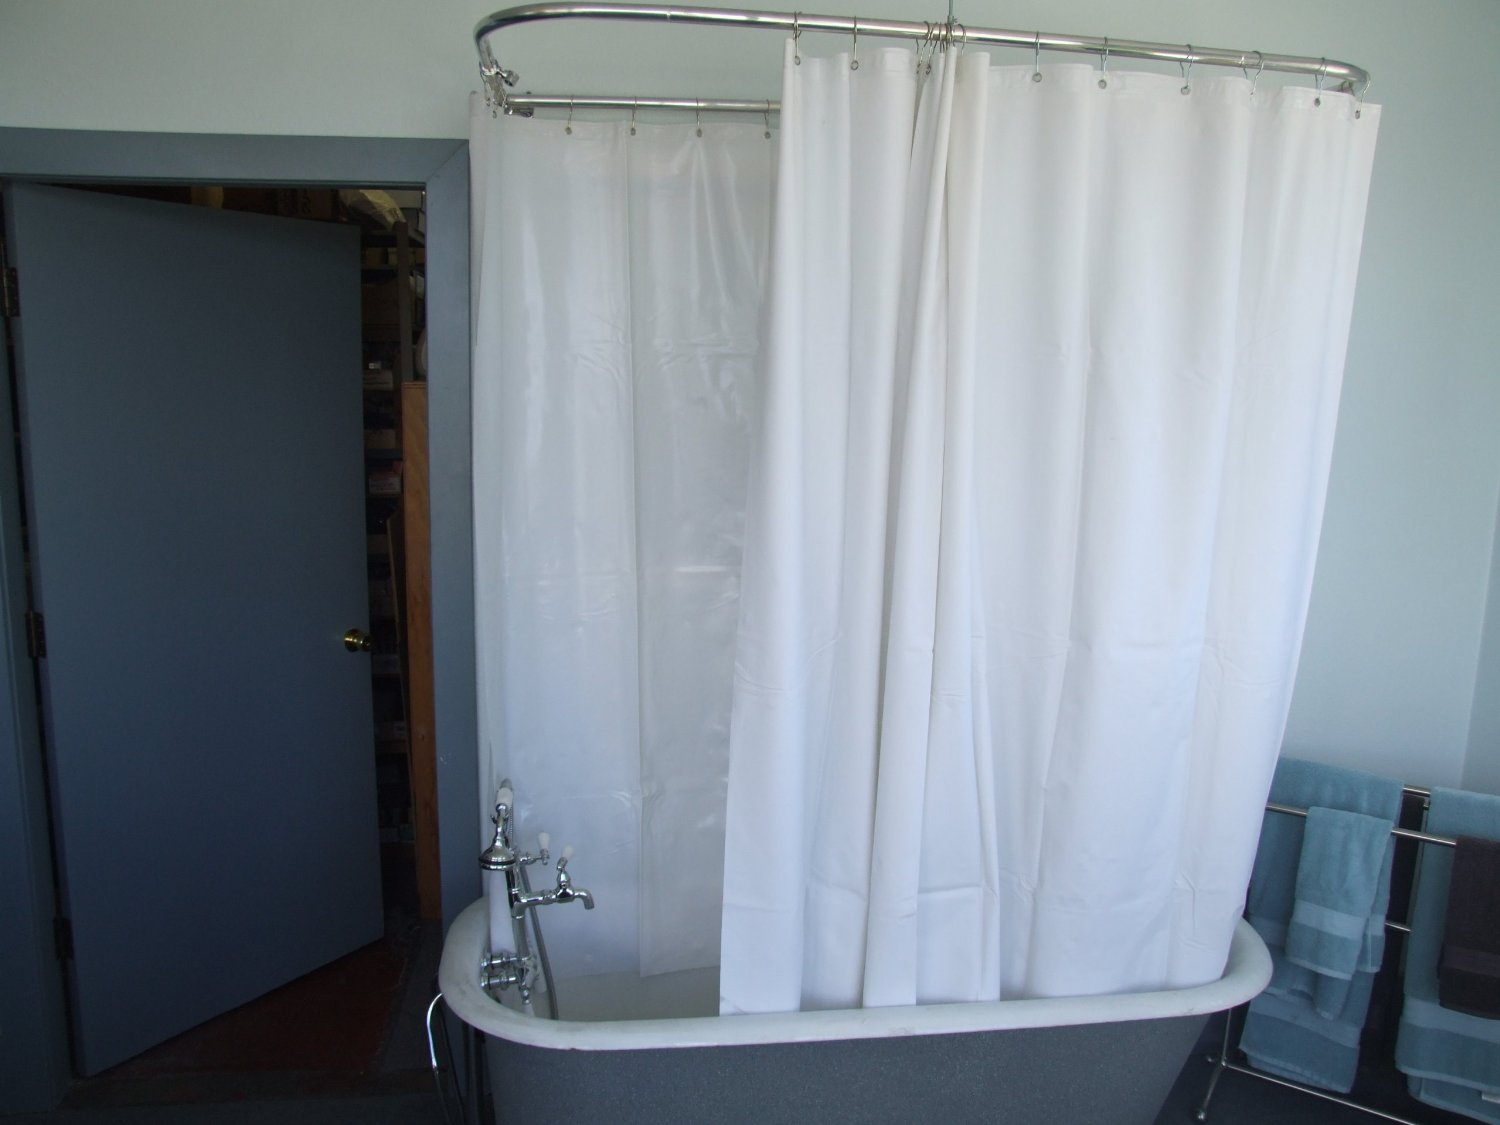 Buy Extra Wide Shower Curtain for a Clawfoot Tub/opaque Less Magnets ...